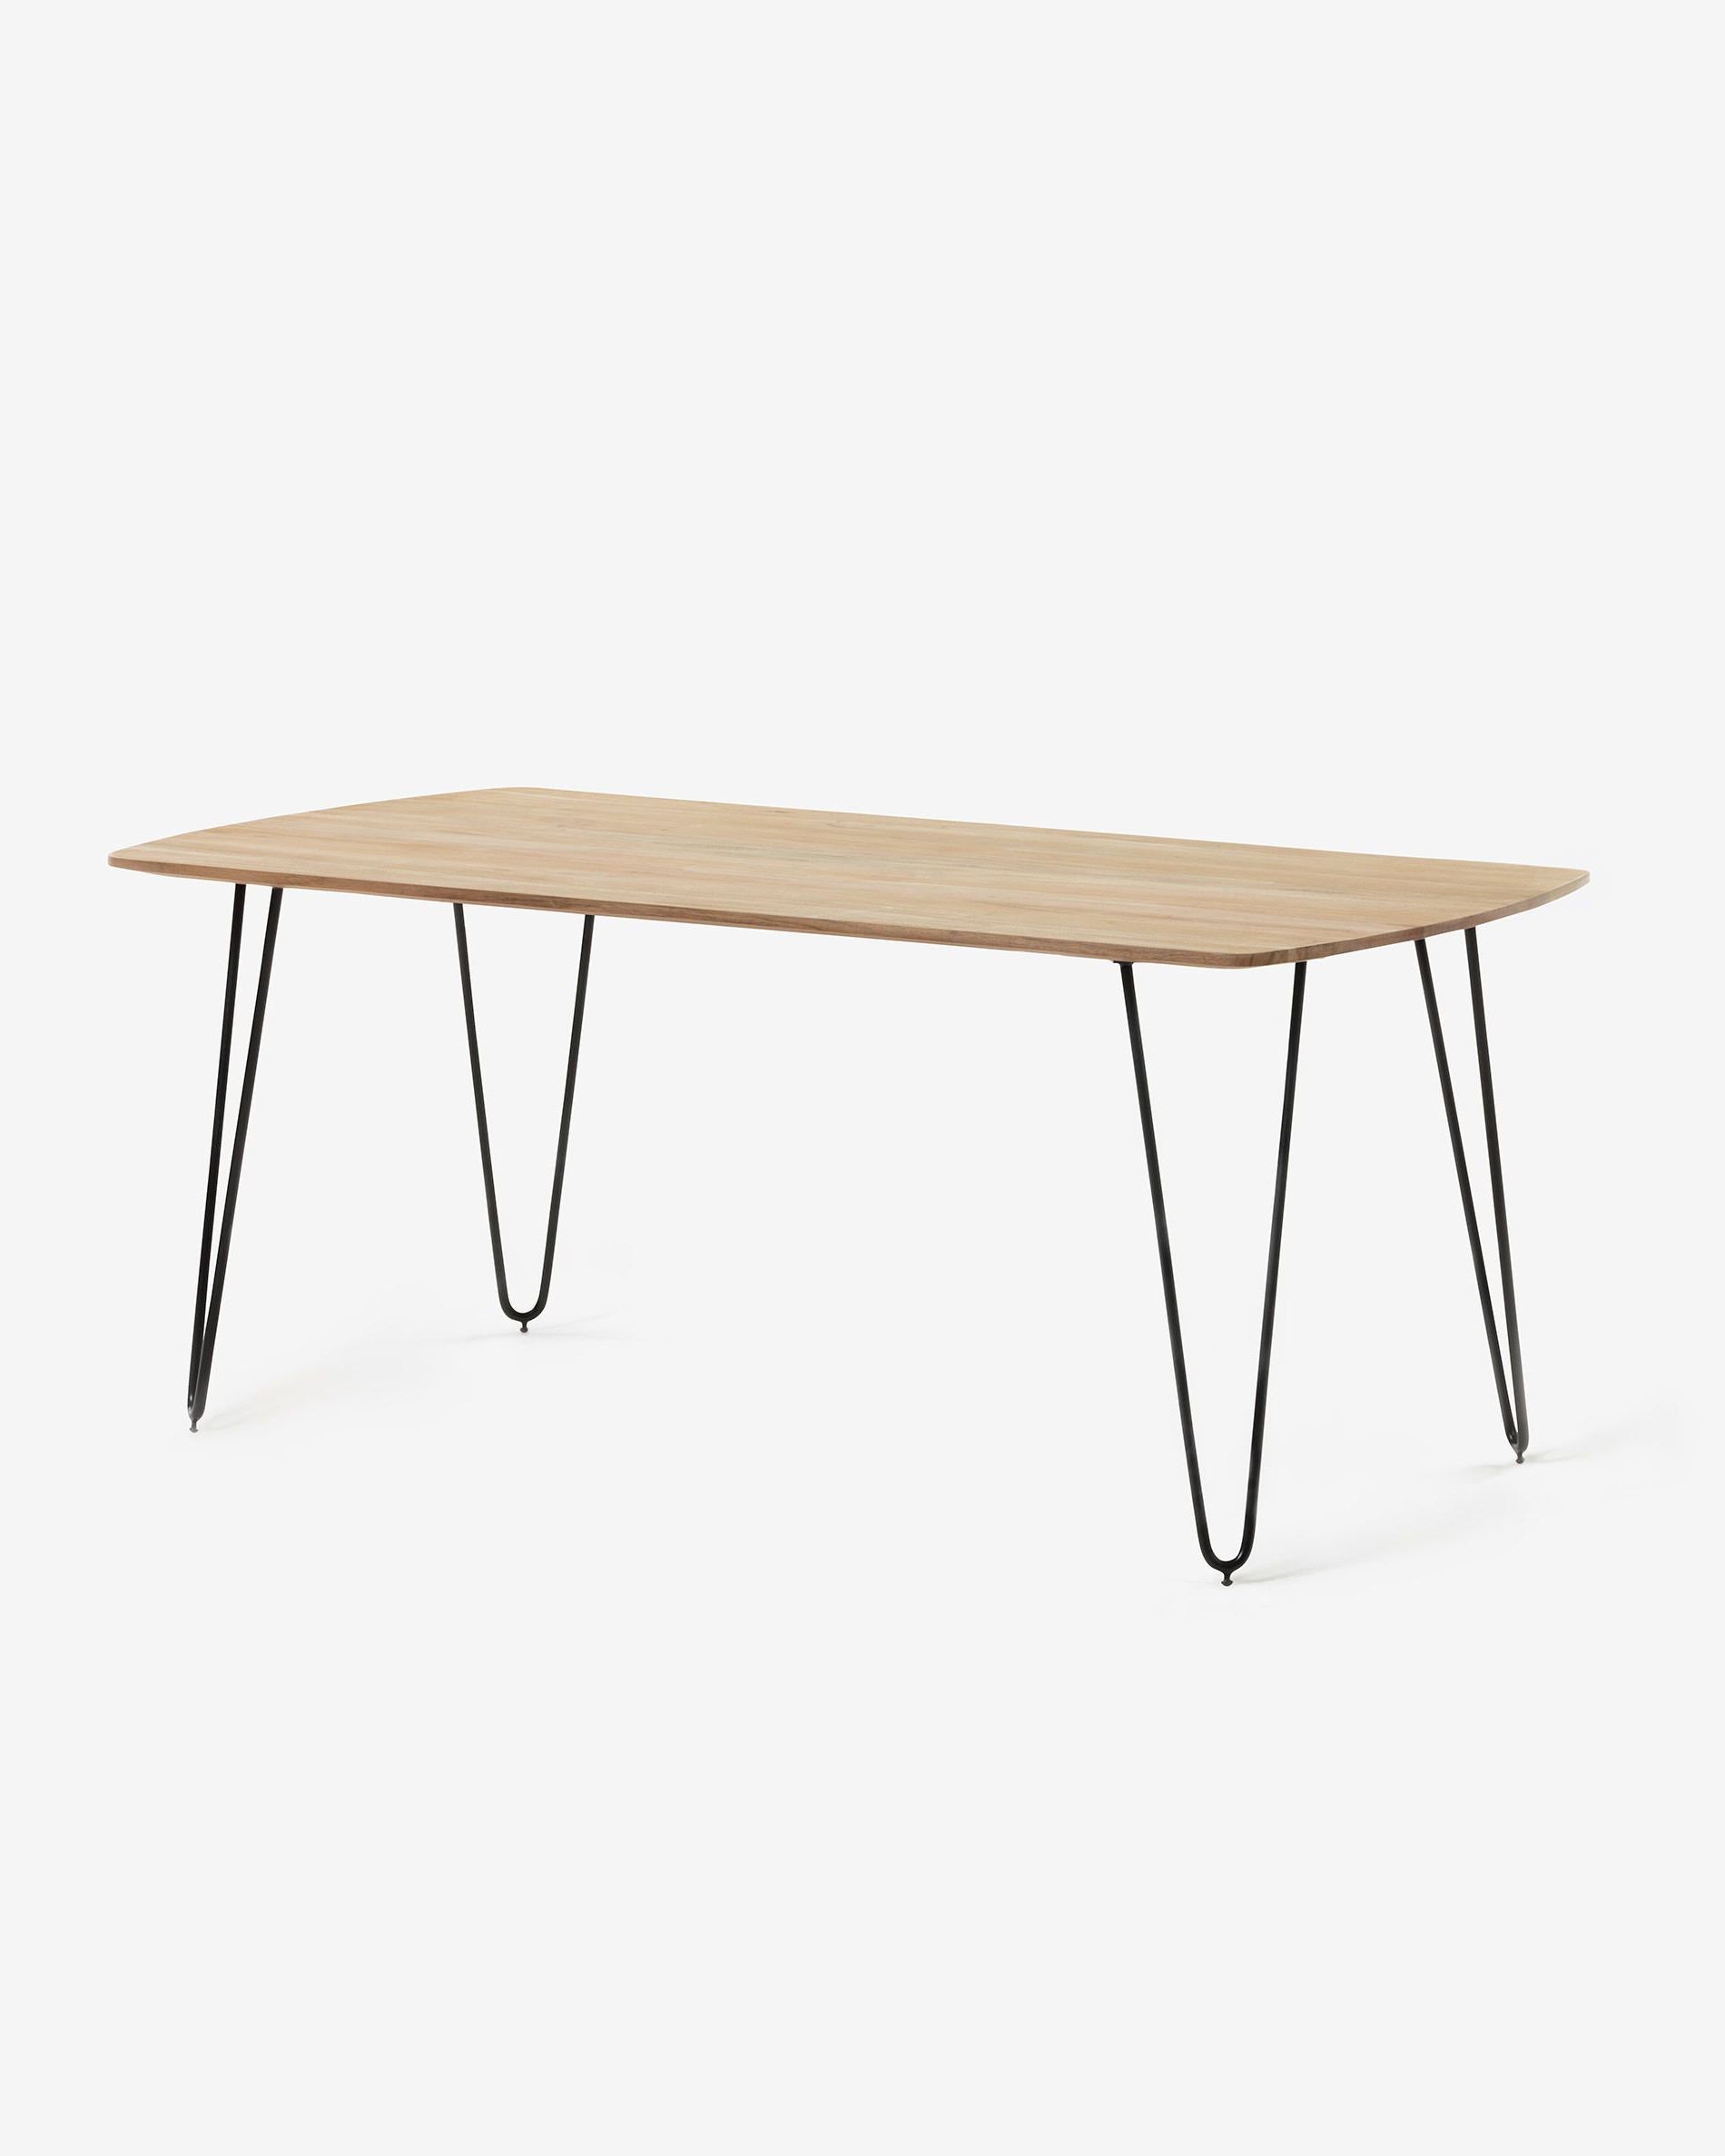 Kave Home Throughout Newest Acacia Dining Tables With Black X Legs (View 18 of 25)